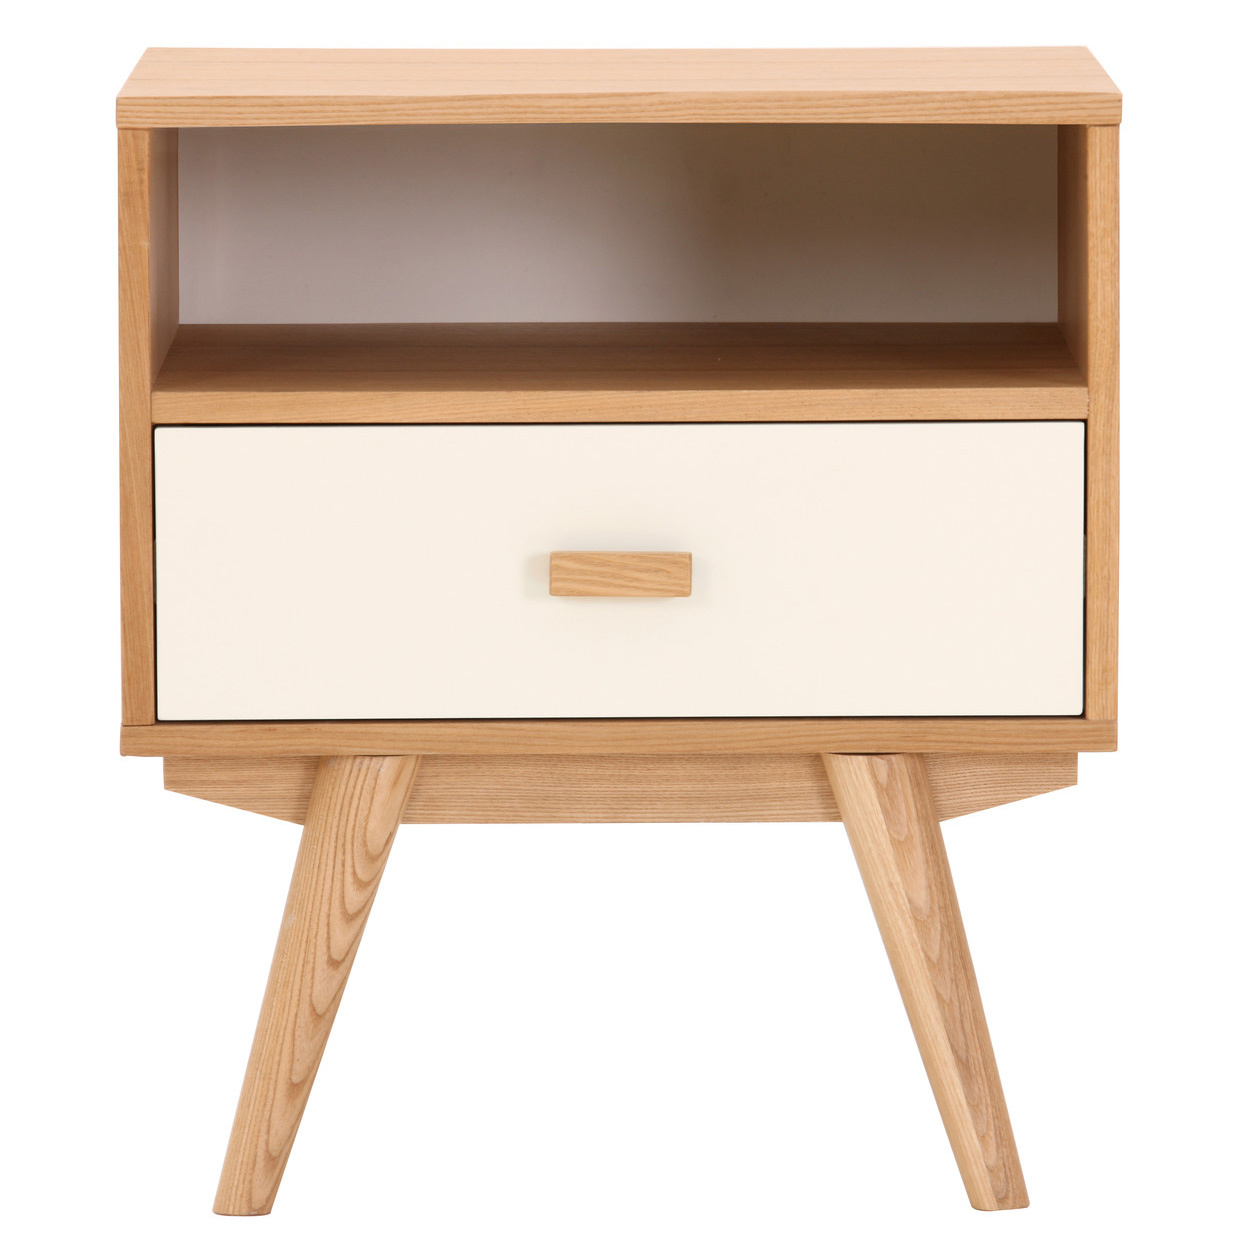 SKU #ESTA1090 Sofia Bedside Table is also sometimes listed under the  following manufacturer numbers: Sofia Bedside Table - 1 Drawer -, Sofia Bedside  Table